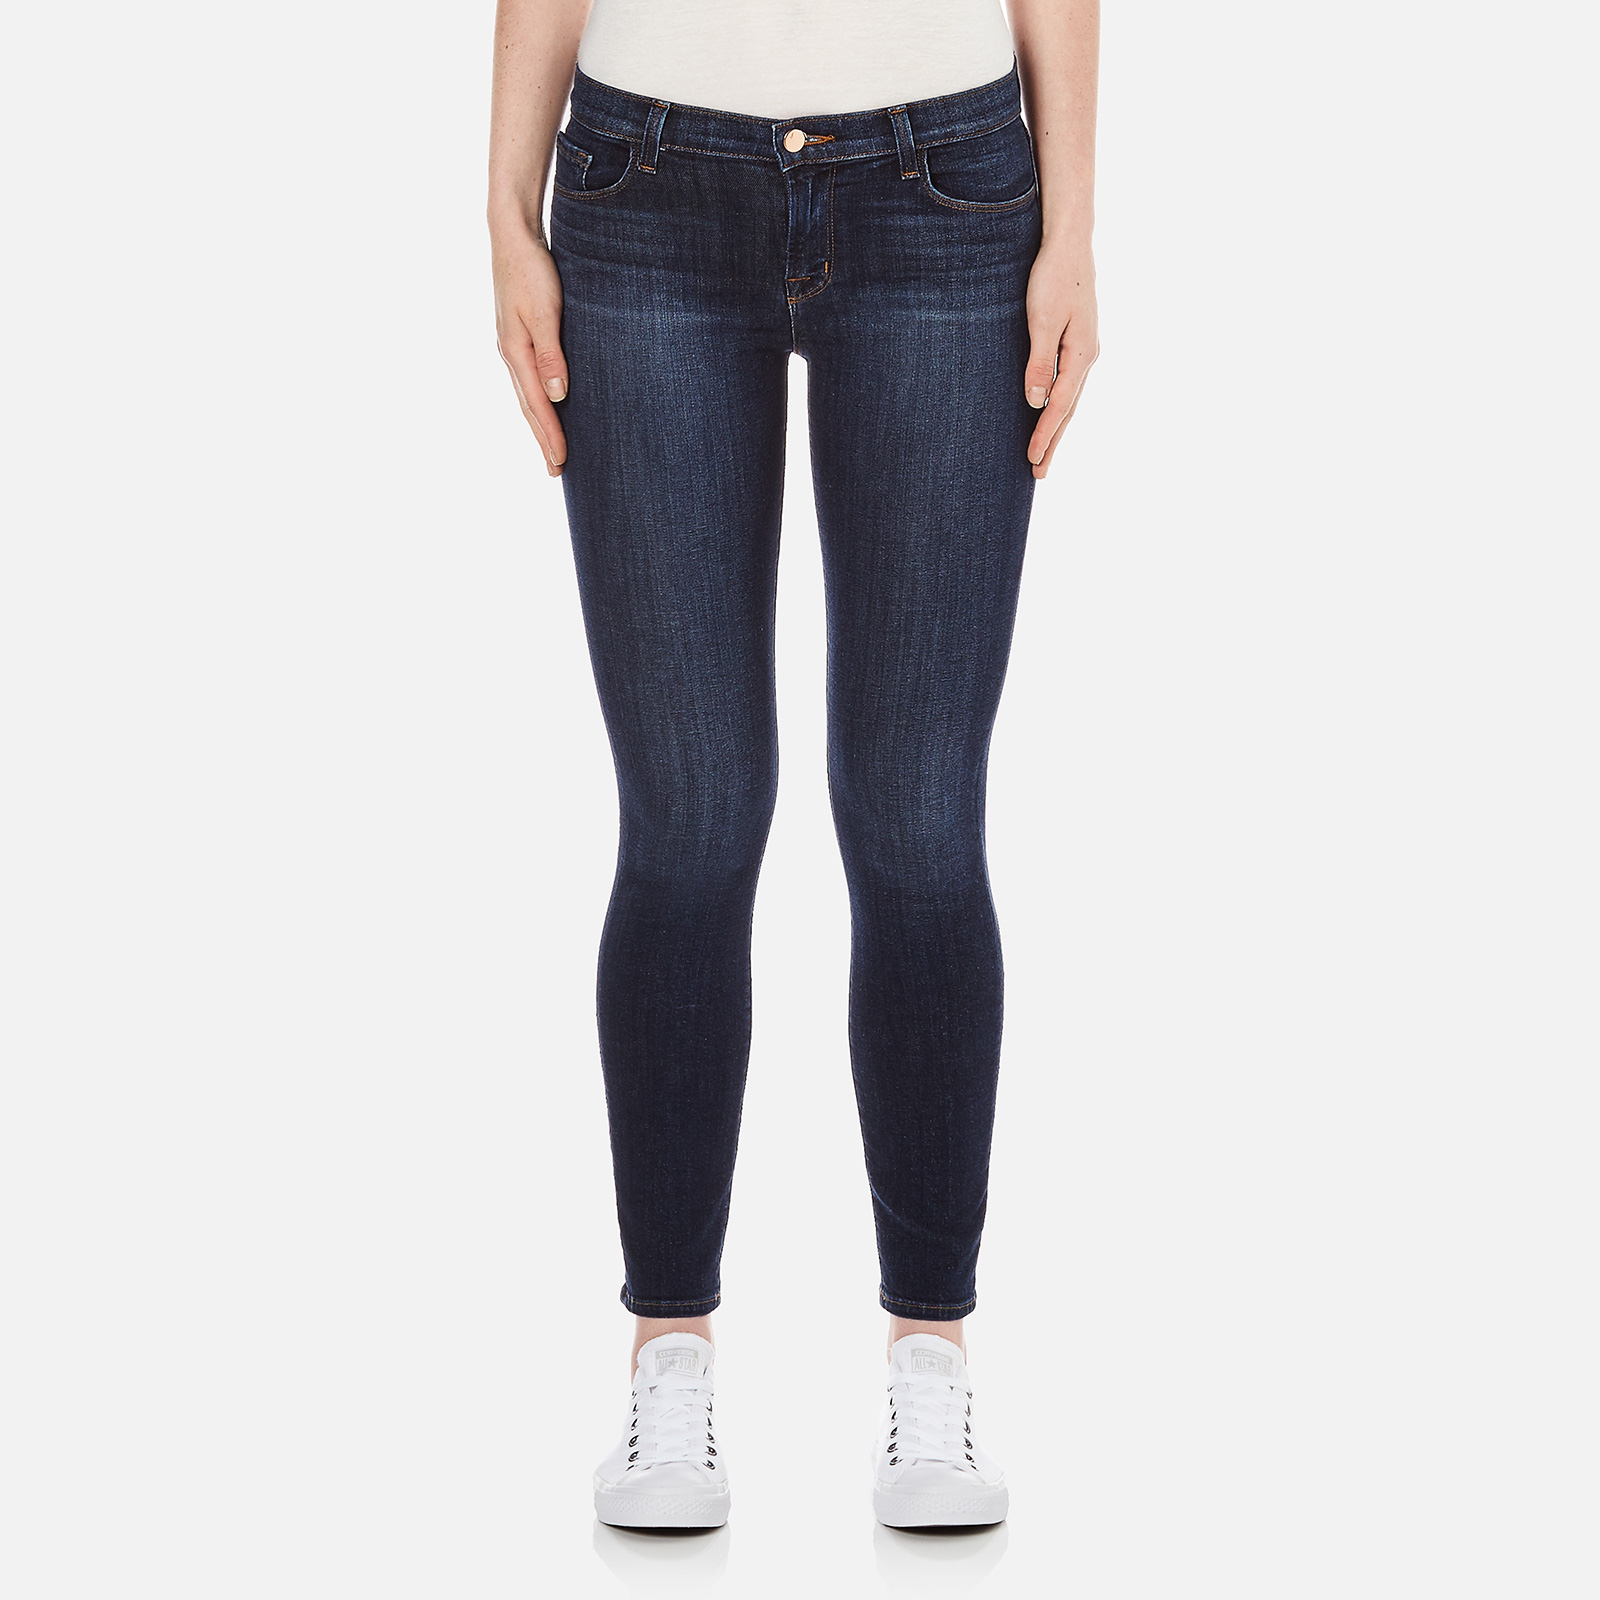 4faeeb1b765e J Brand Women's 811 Mid Rise Skinny Jeans - Oblivion - Free UK Delivery  over £50